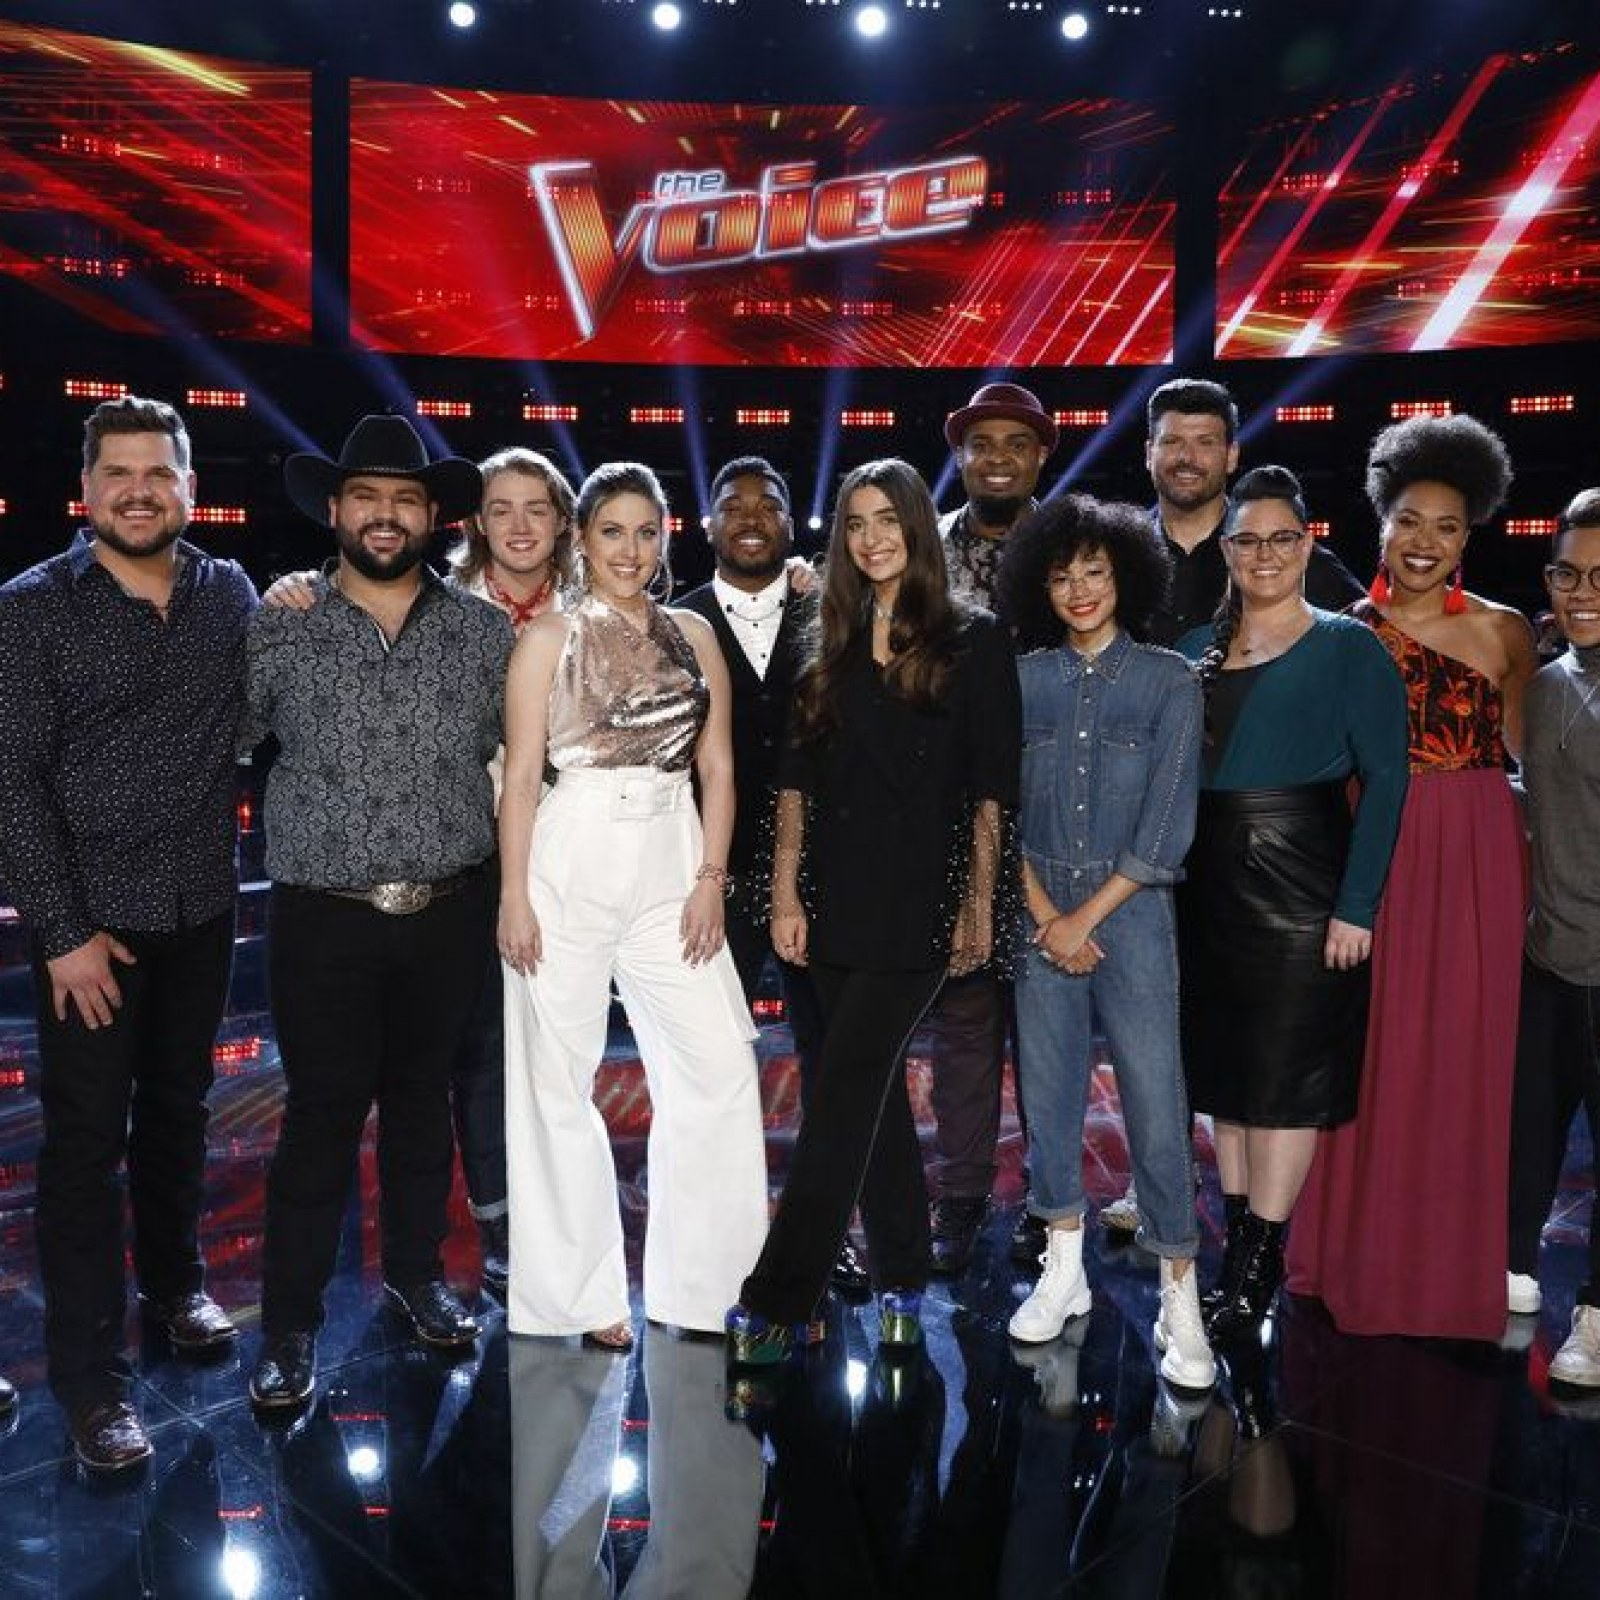 iTunes Top 100 List May Reveal 'The Voice' 2019 Top 8